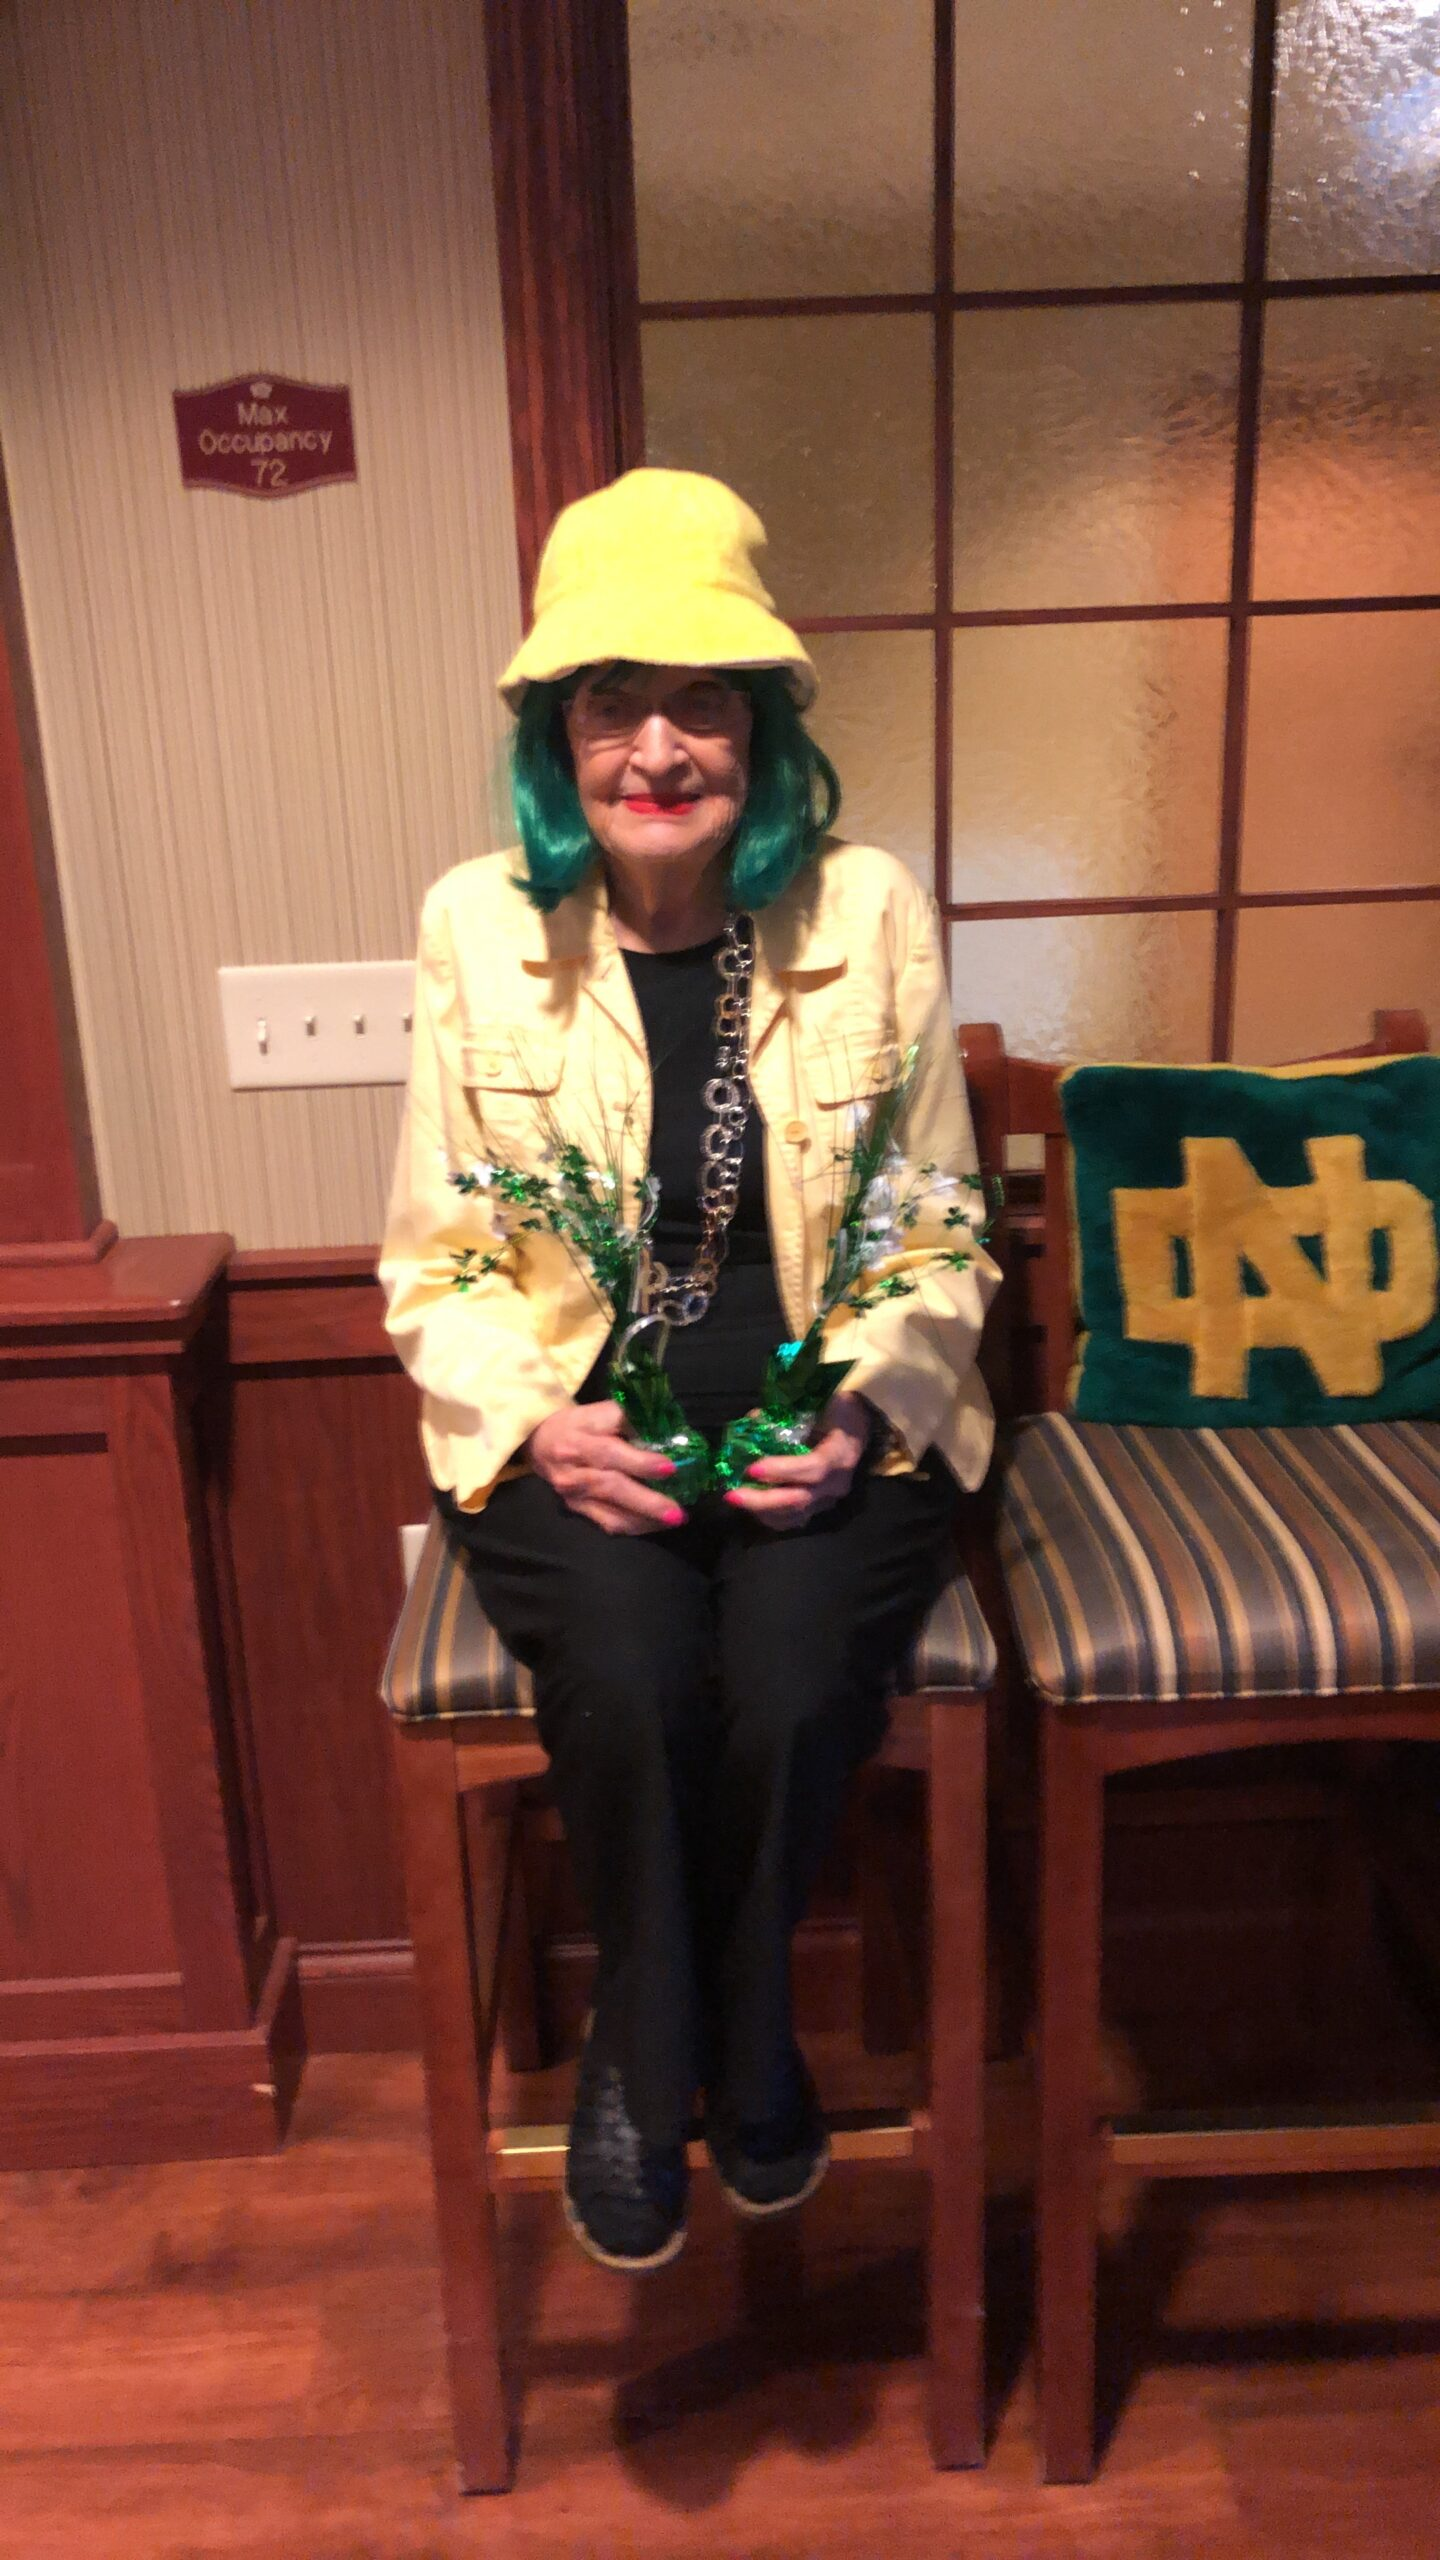 Check out our friend Connie K. who's all ready for Saint Patrick's Day!